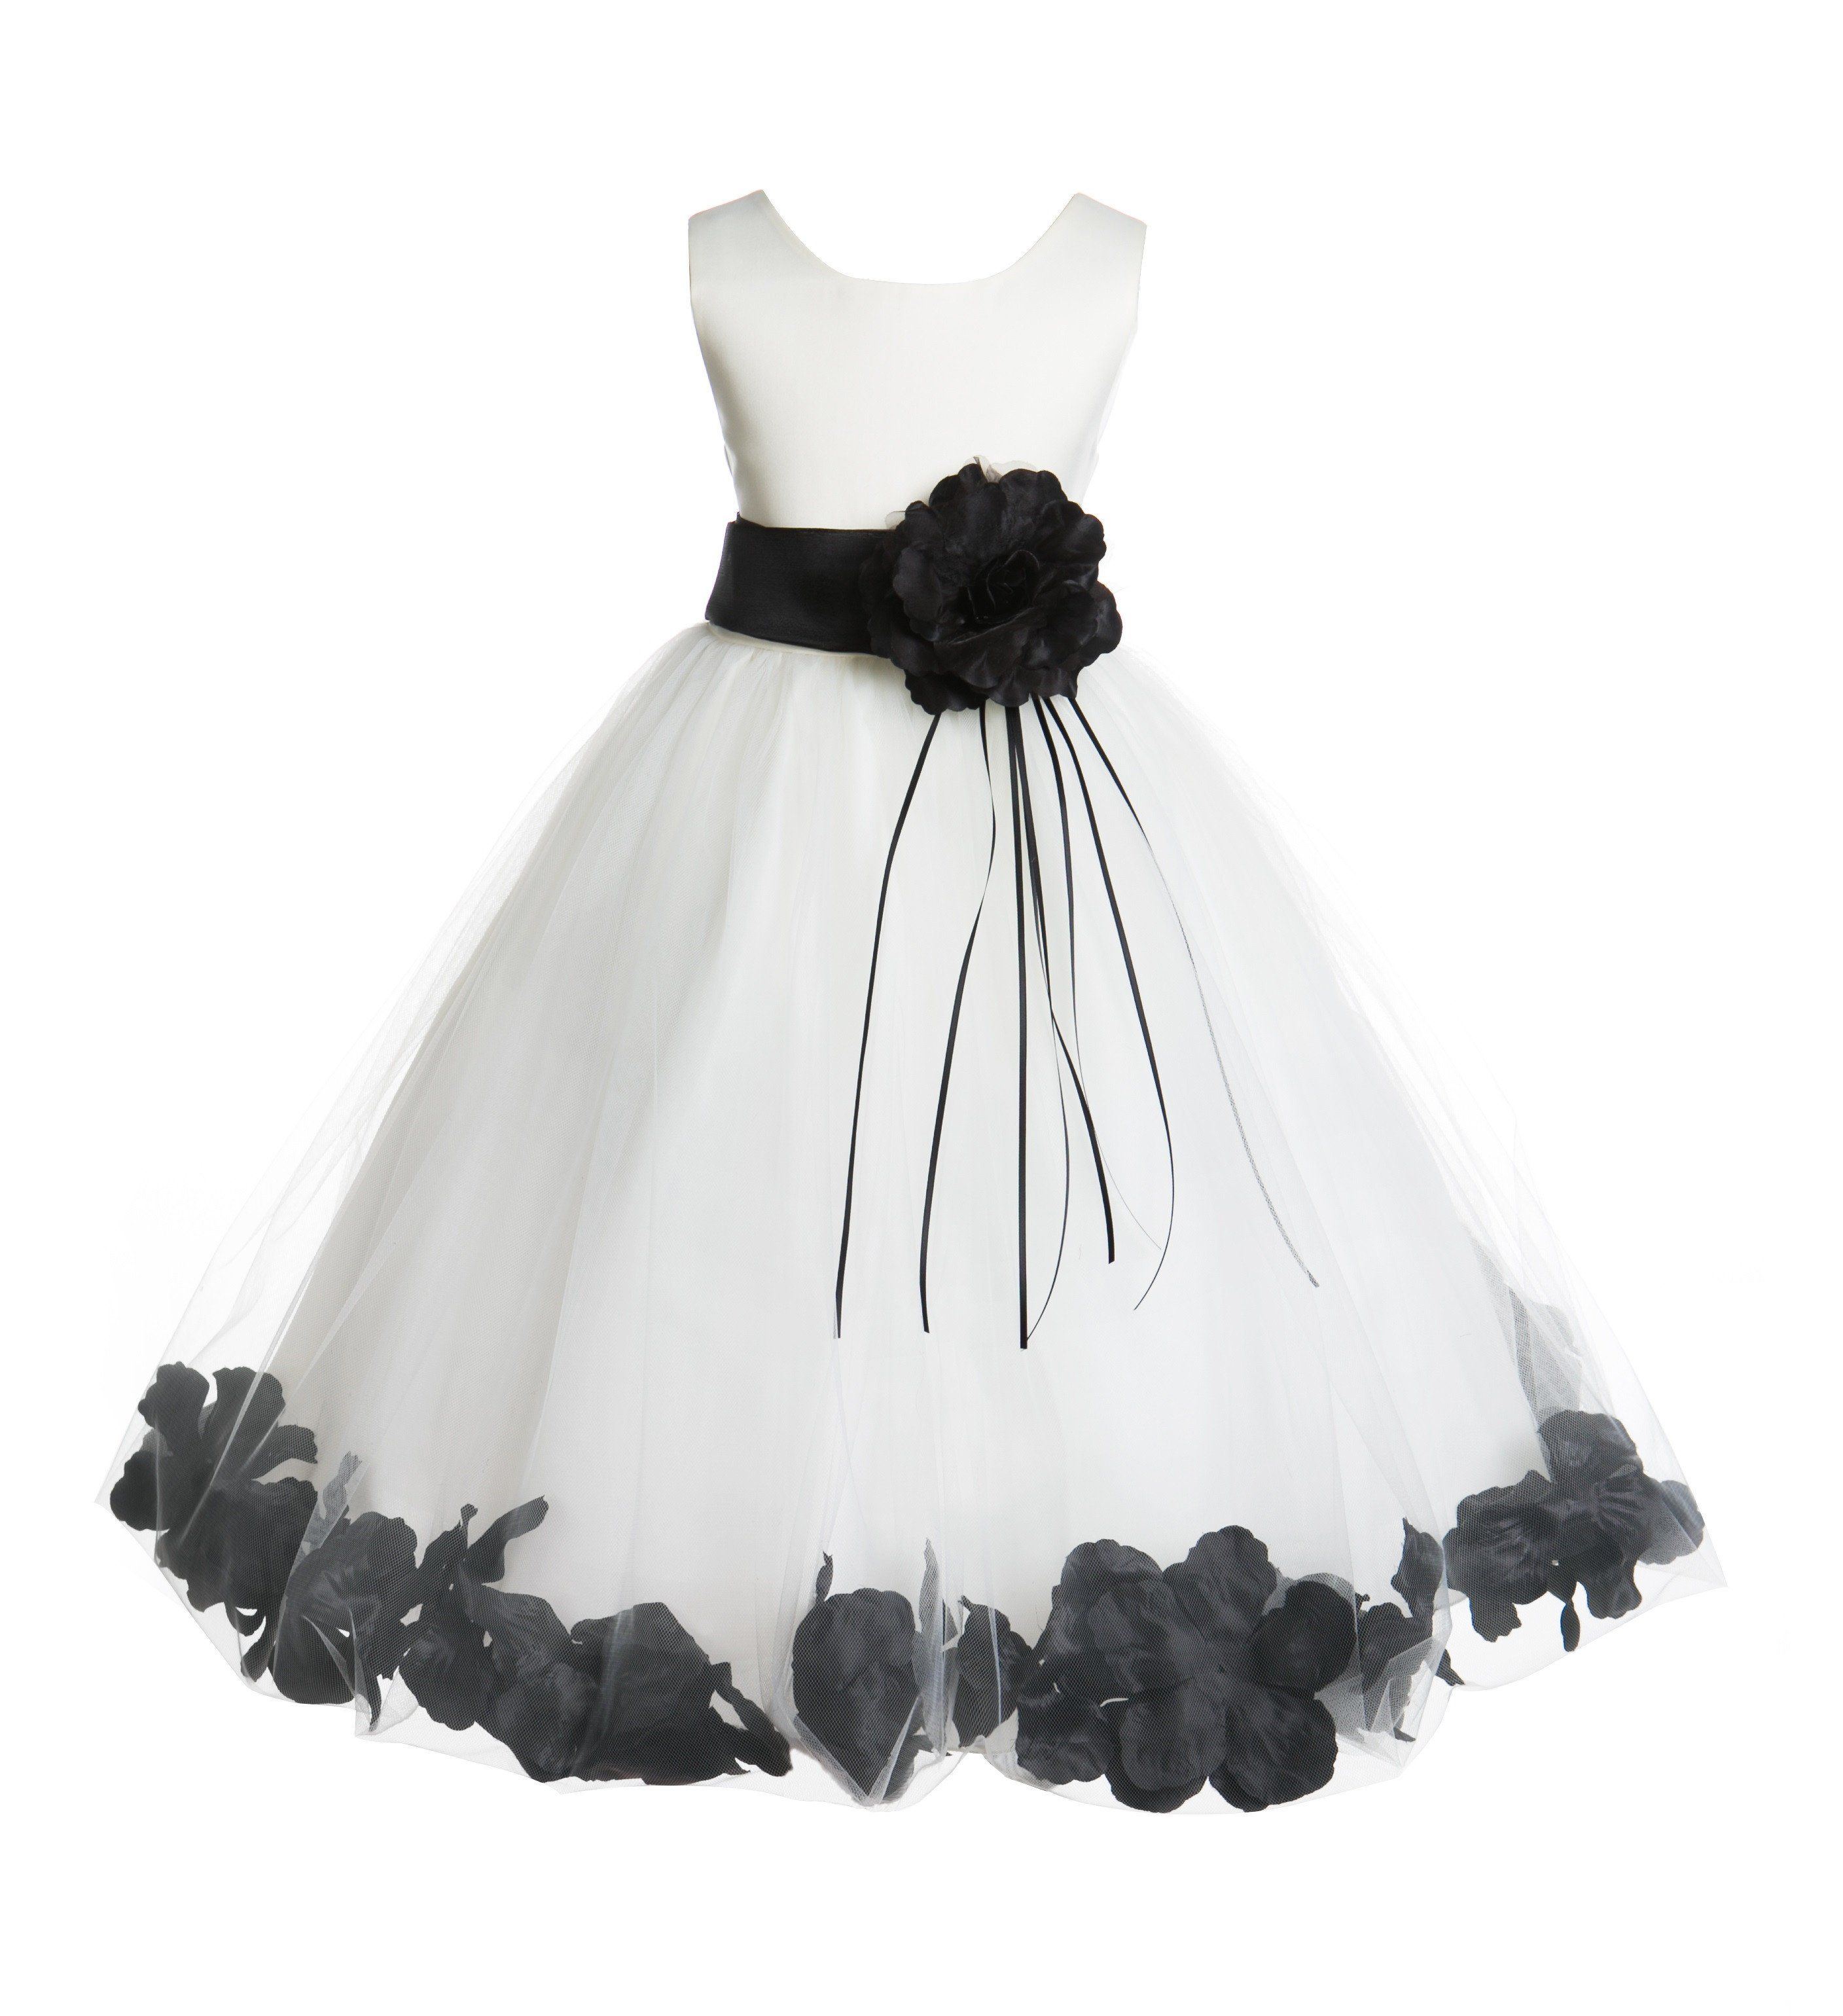 Ivory tulle floral rose petals princess wedding pageant recital